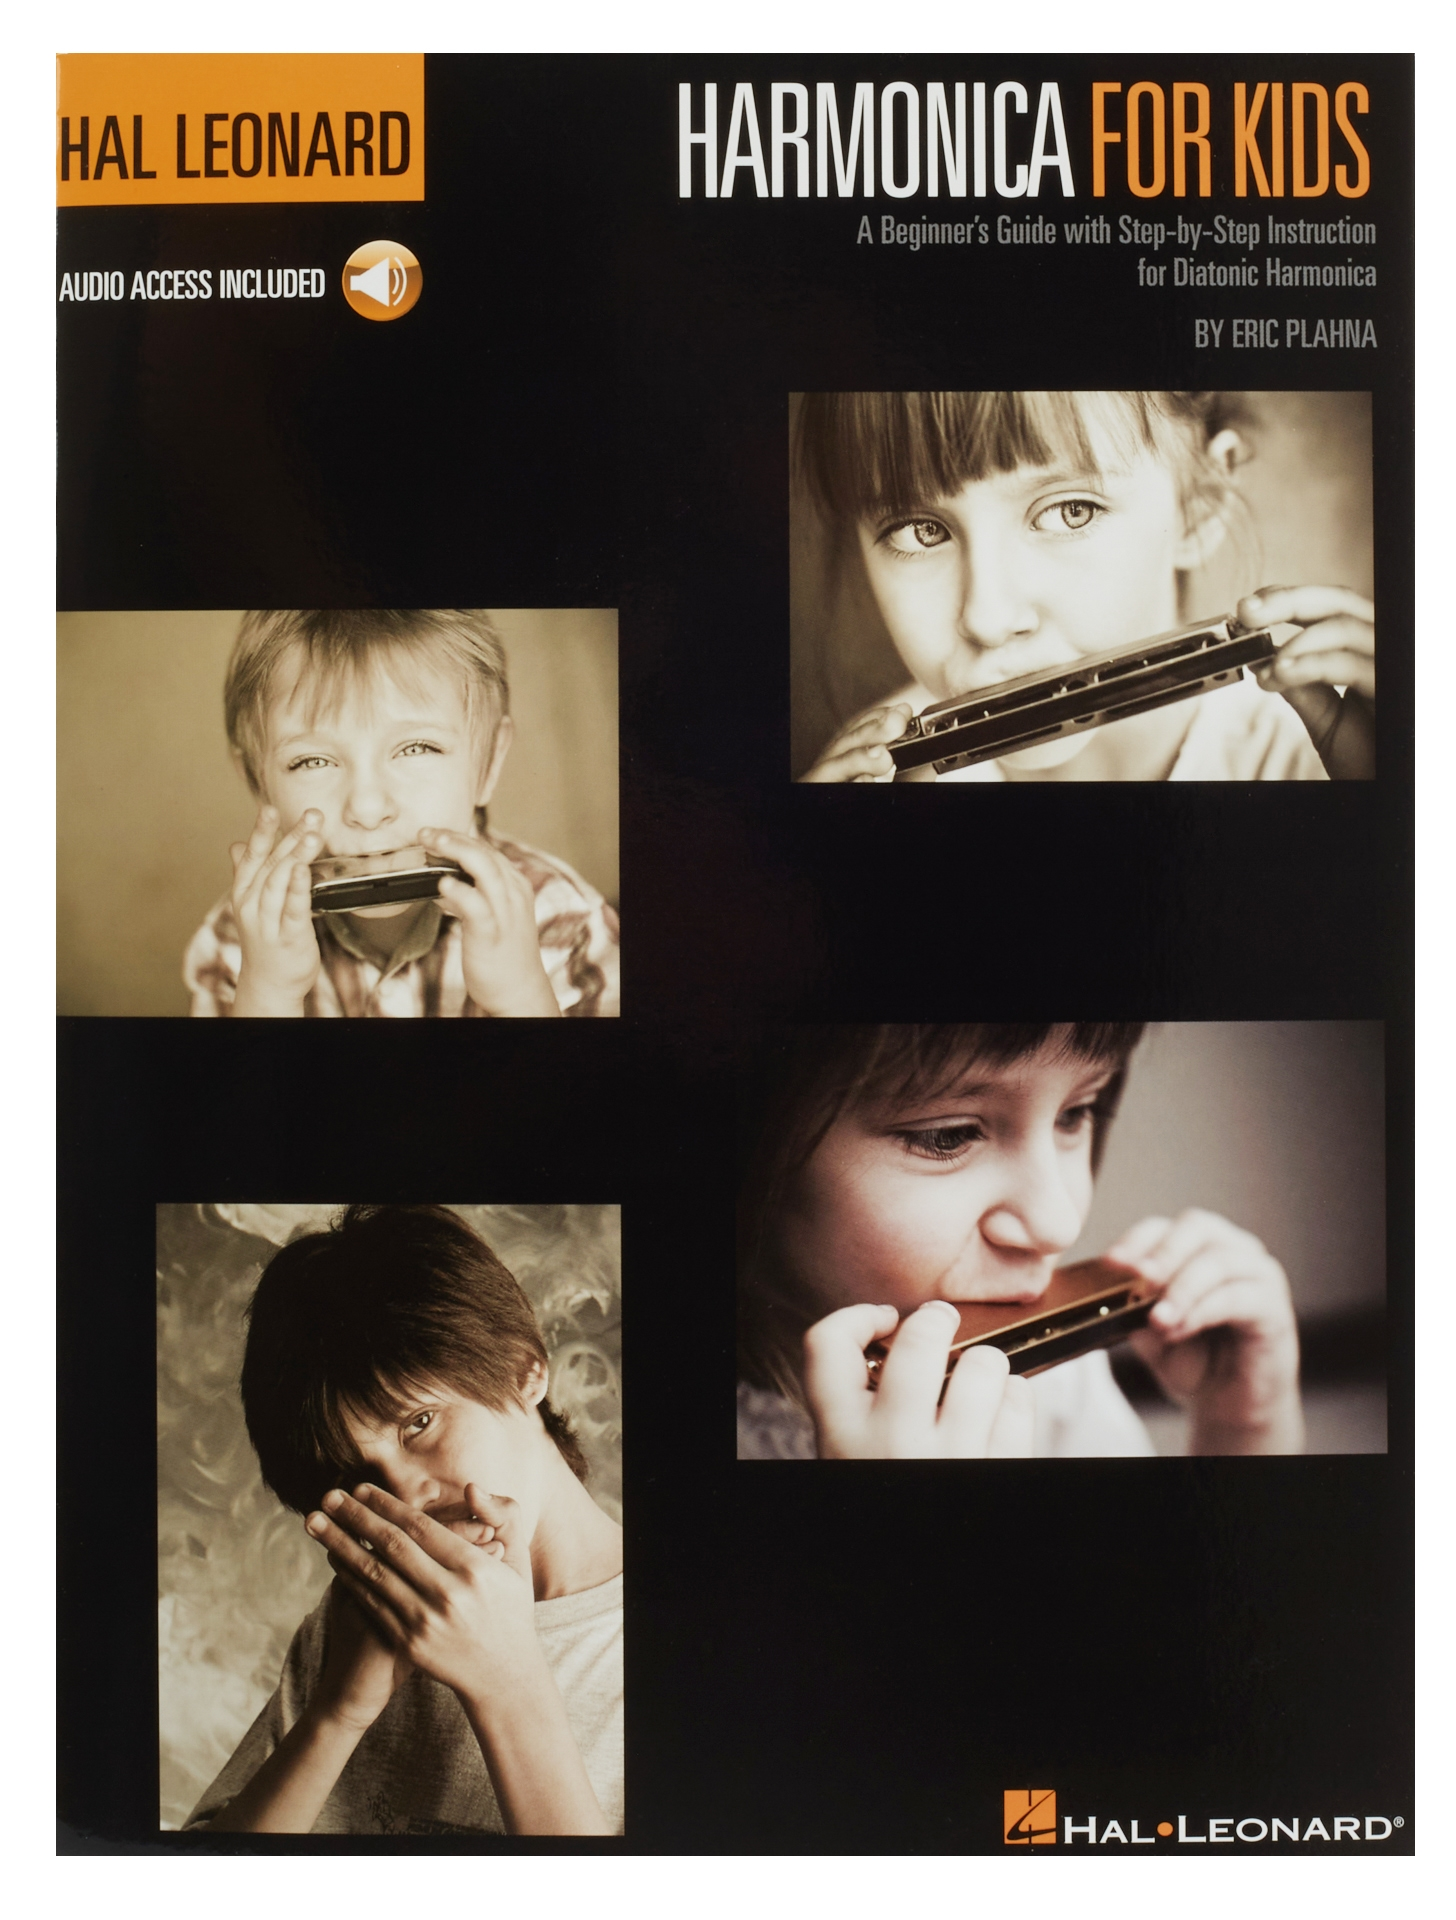 MS Harmonica For Kids: A Beginner's Guide With Step-by-Step Instruction For Diatonic Harmonica